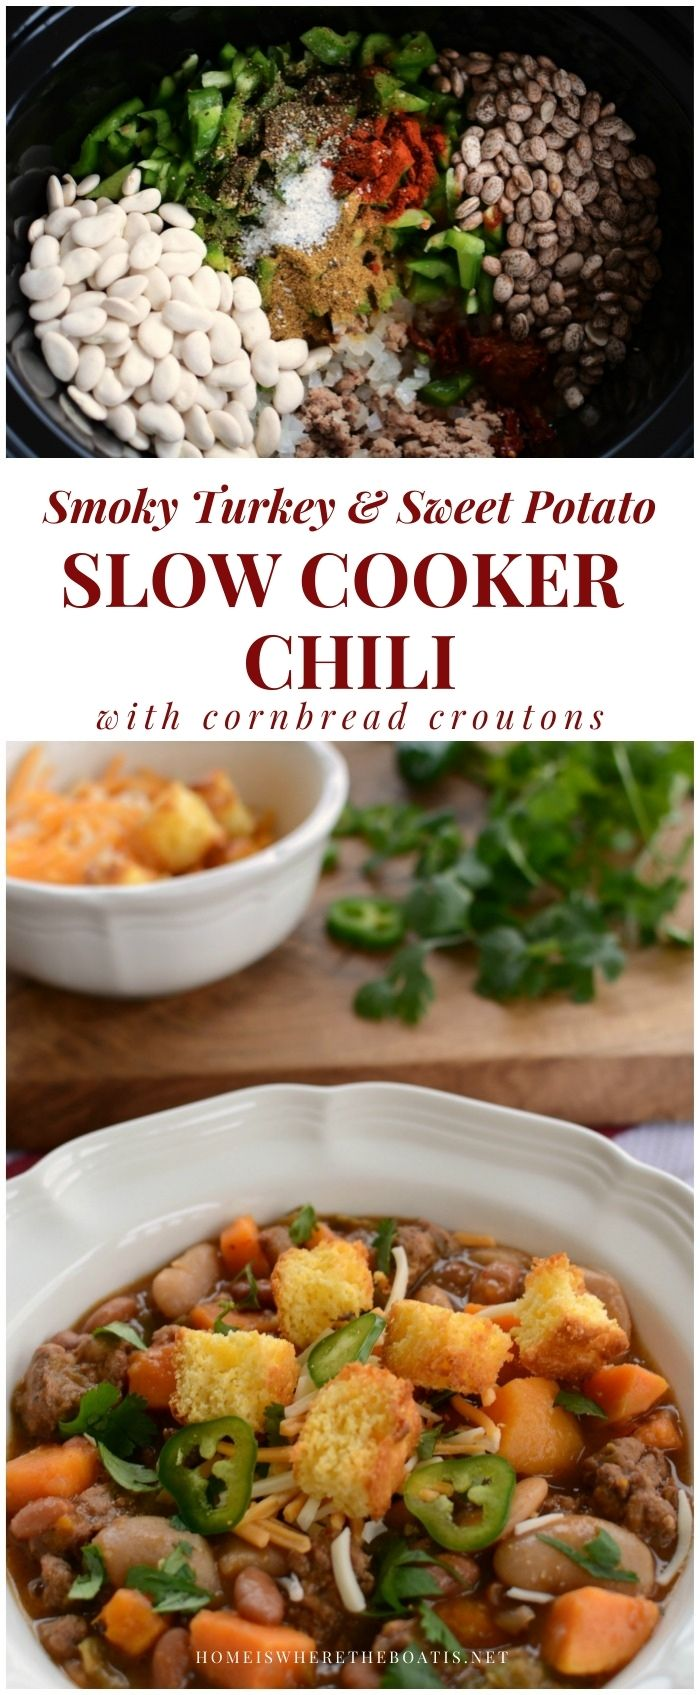 Smoky Turkey & Sweet Potato Slow Cooker Chili with cornbread croutons | ©homeiswheretheboatis.net #recipes #soup #chili #winter